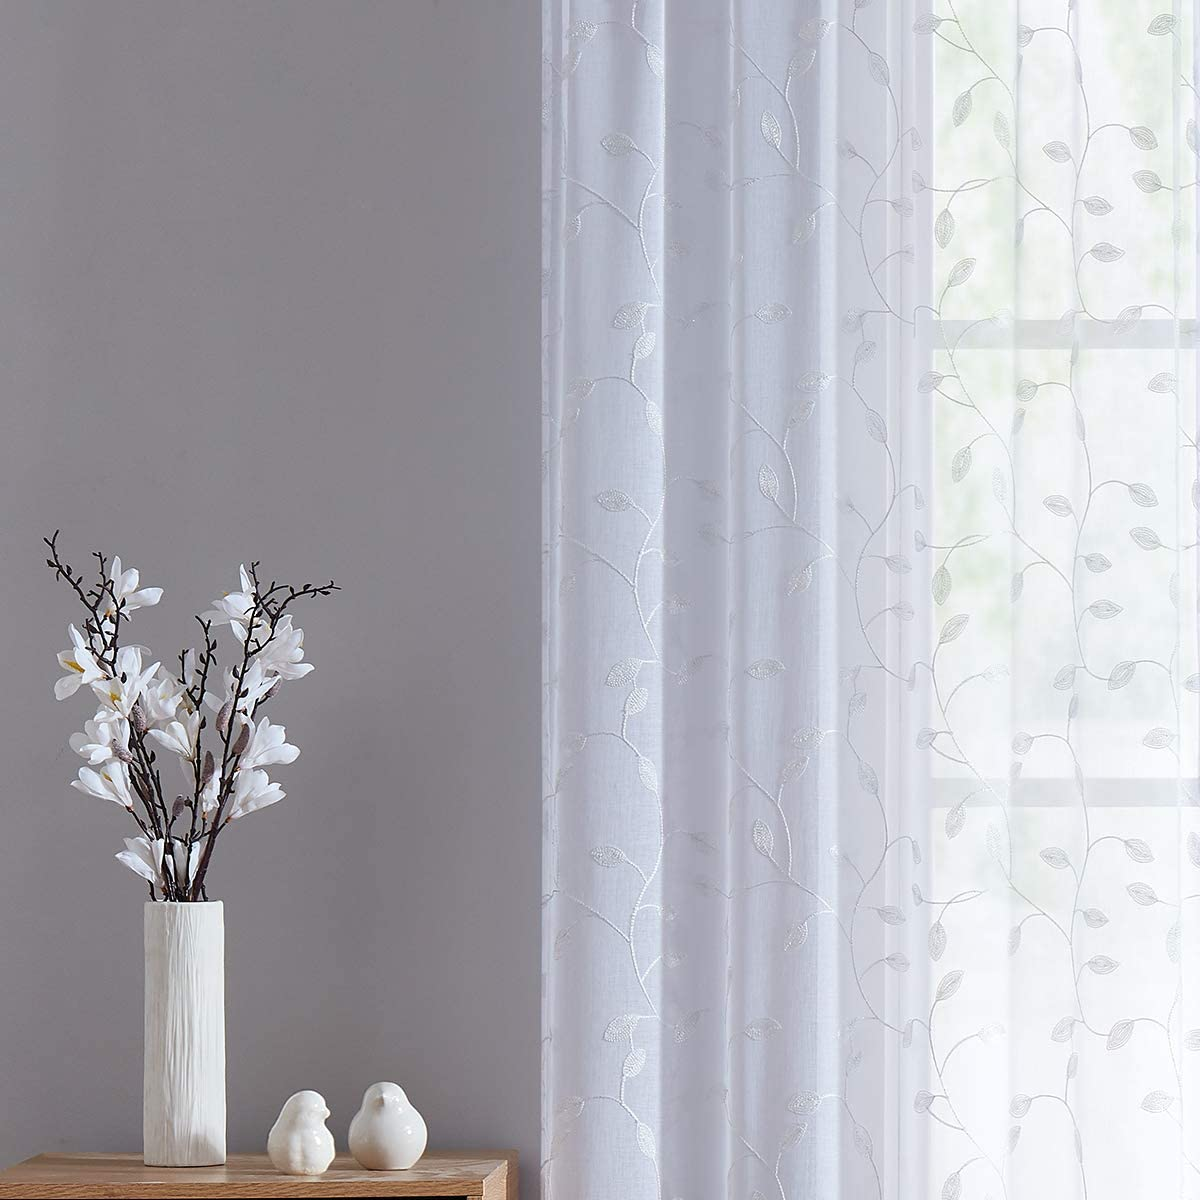 Fragrantex Embroidered Leaf White Sheer Room Living Las Vegas Mall for Curtains Limited time for free shipping